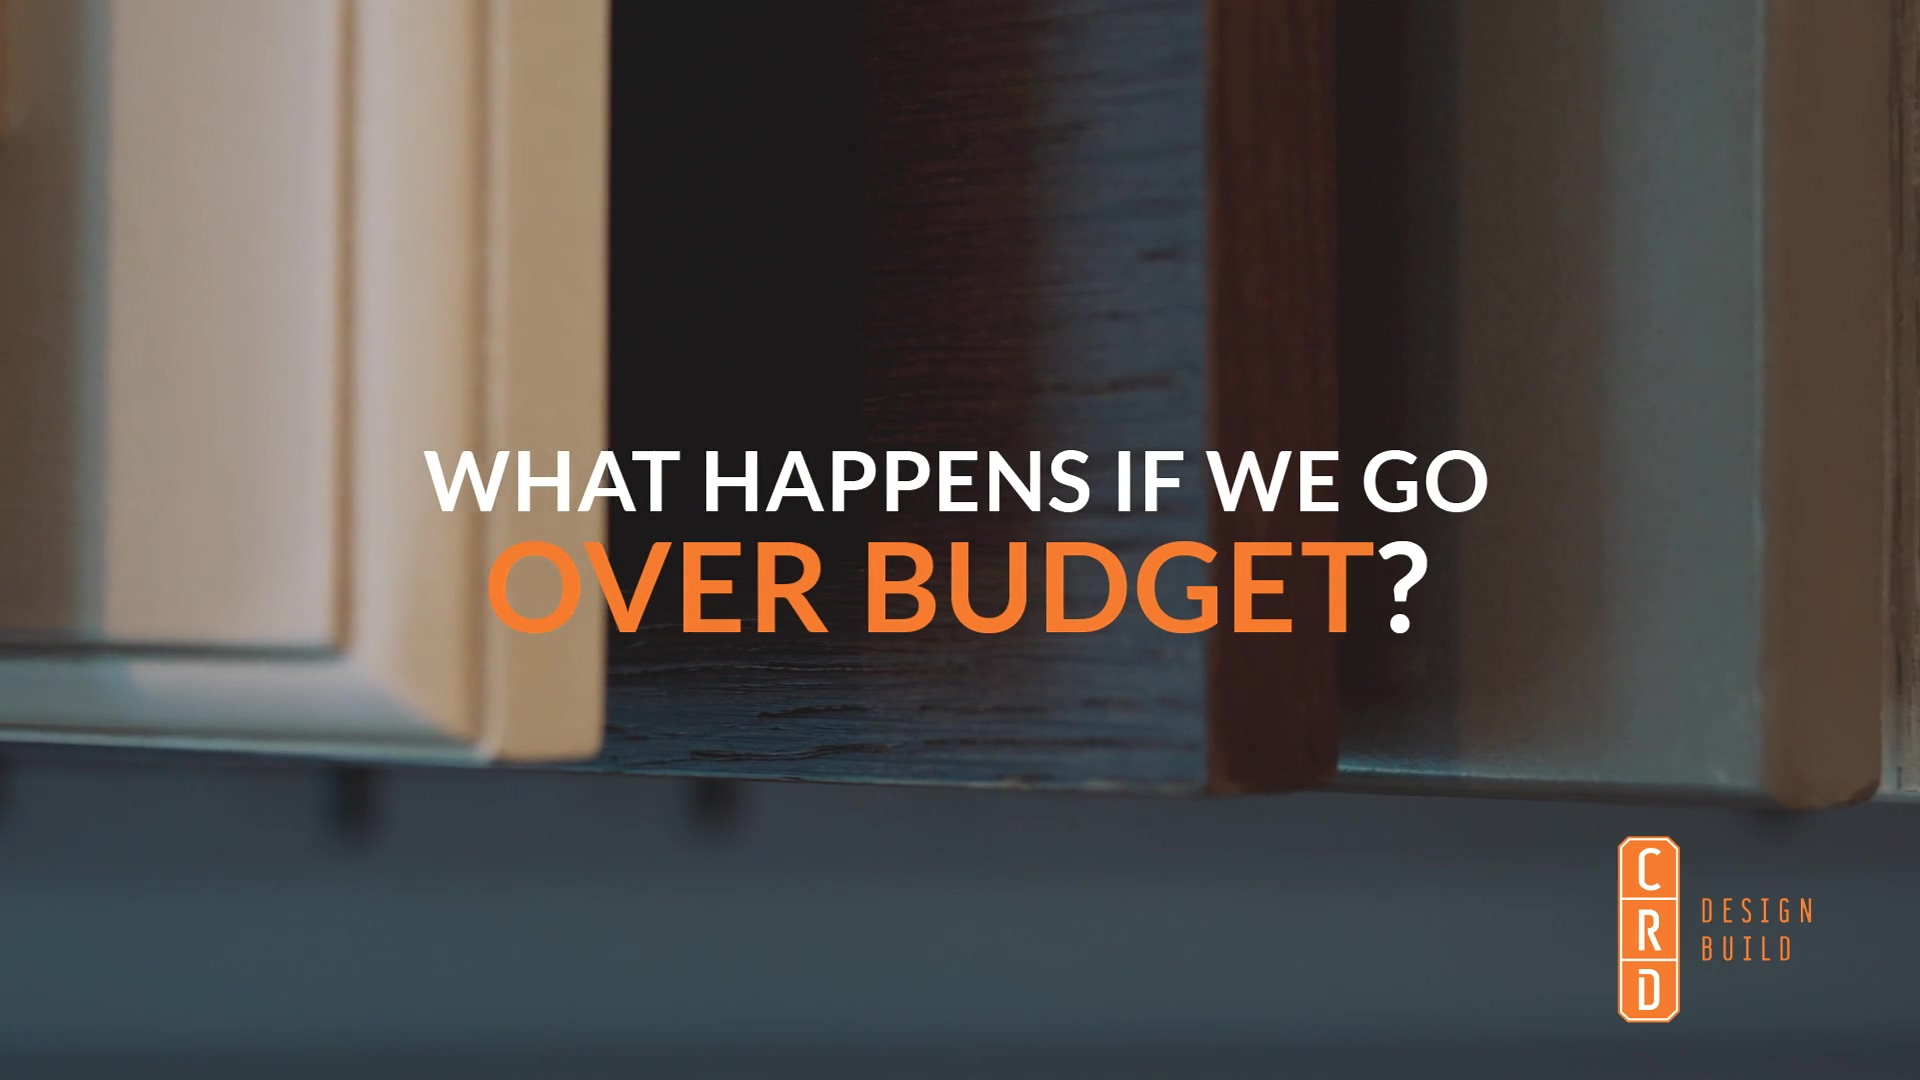 CRD - What happens if we go over budget